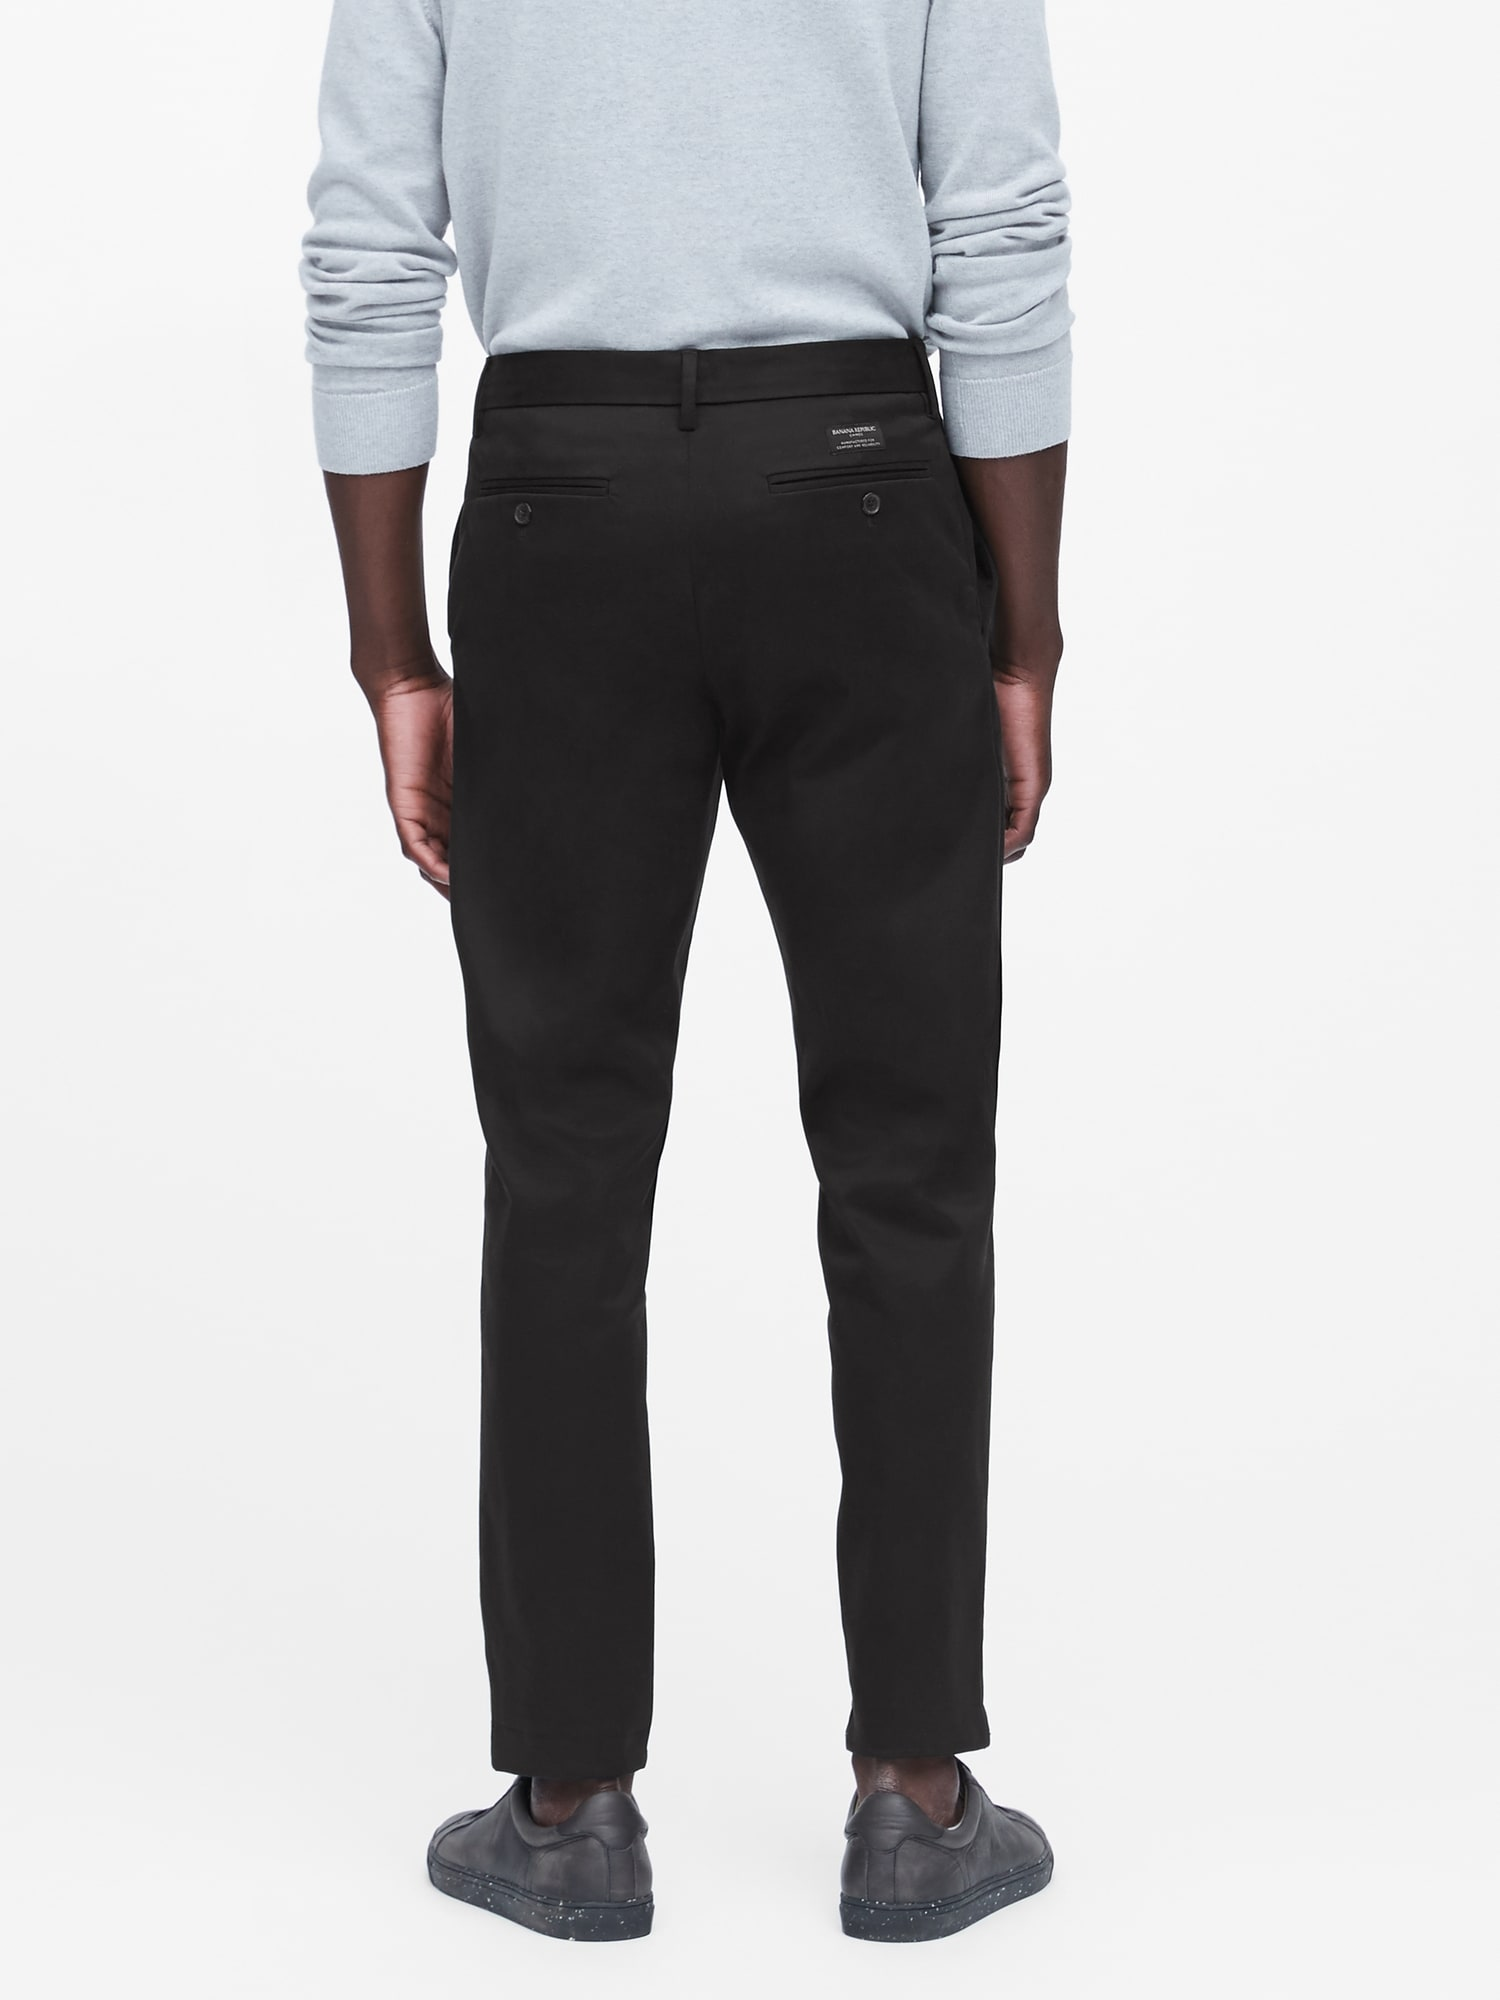 Twill Chino Pants with A Belt Flex Fabric Dark Navy Assorted Sizes